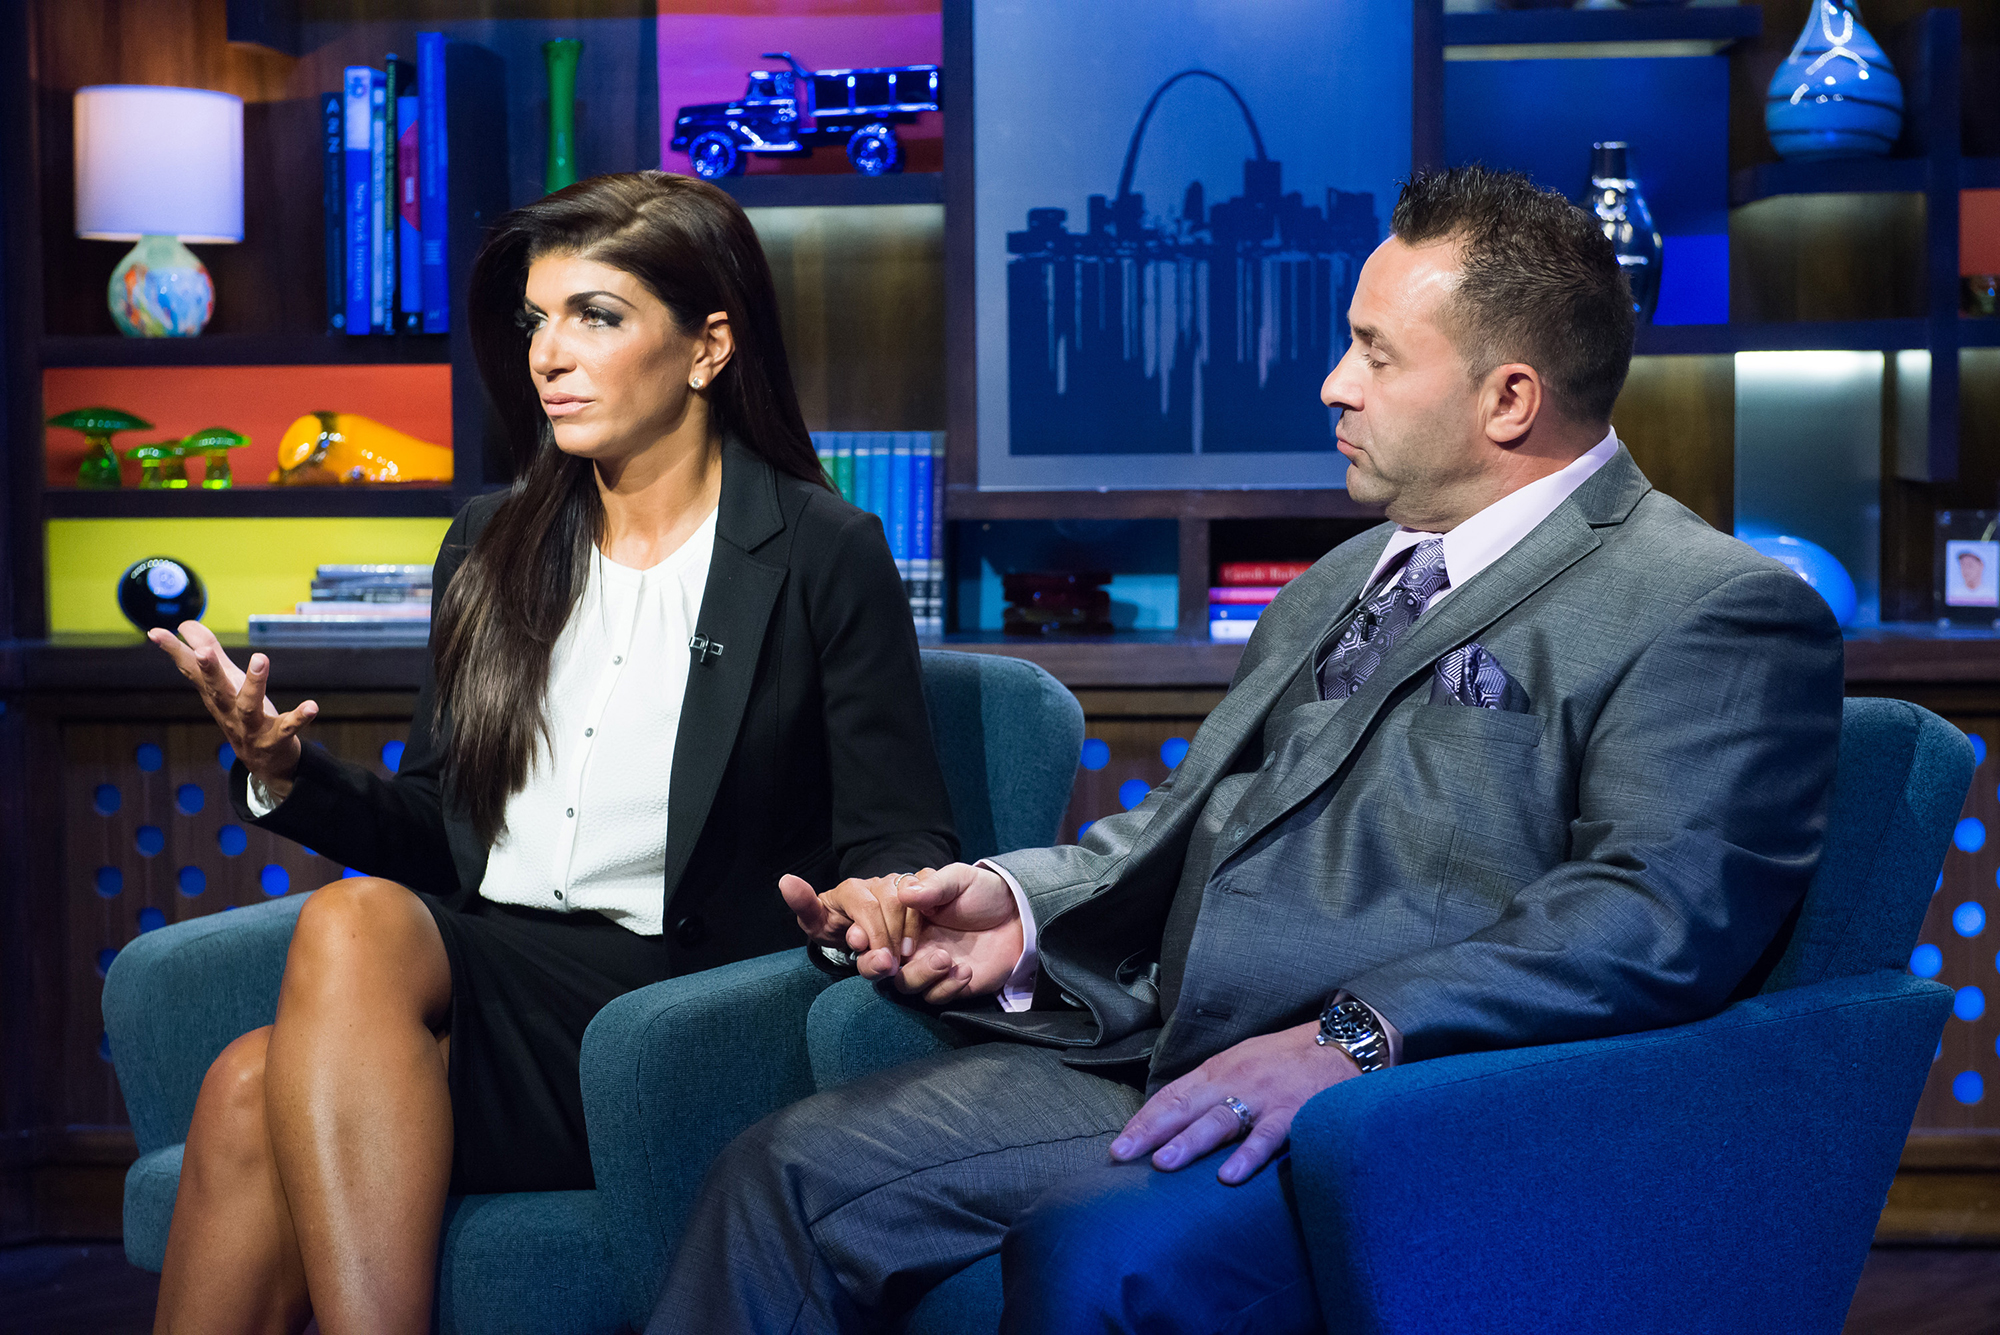 """Everything Teresa Giudice Has Said About Joe Giudice's Deportation - Teresa denied in October 2018 that she plans to divorce Joe after his deportation. """"No. We're going to be a family,"""" she told Entertainment Tonight ."""